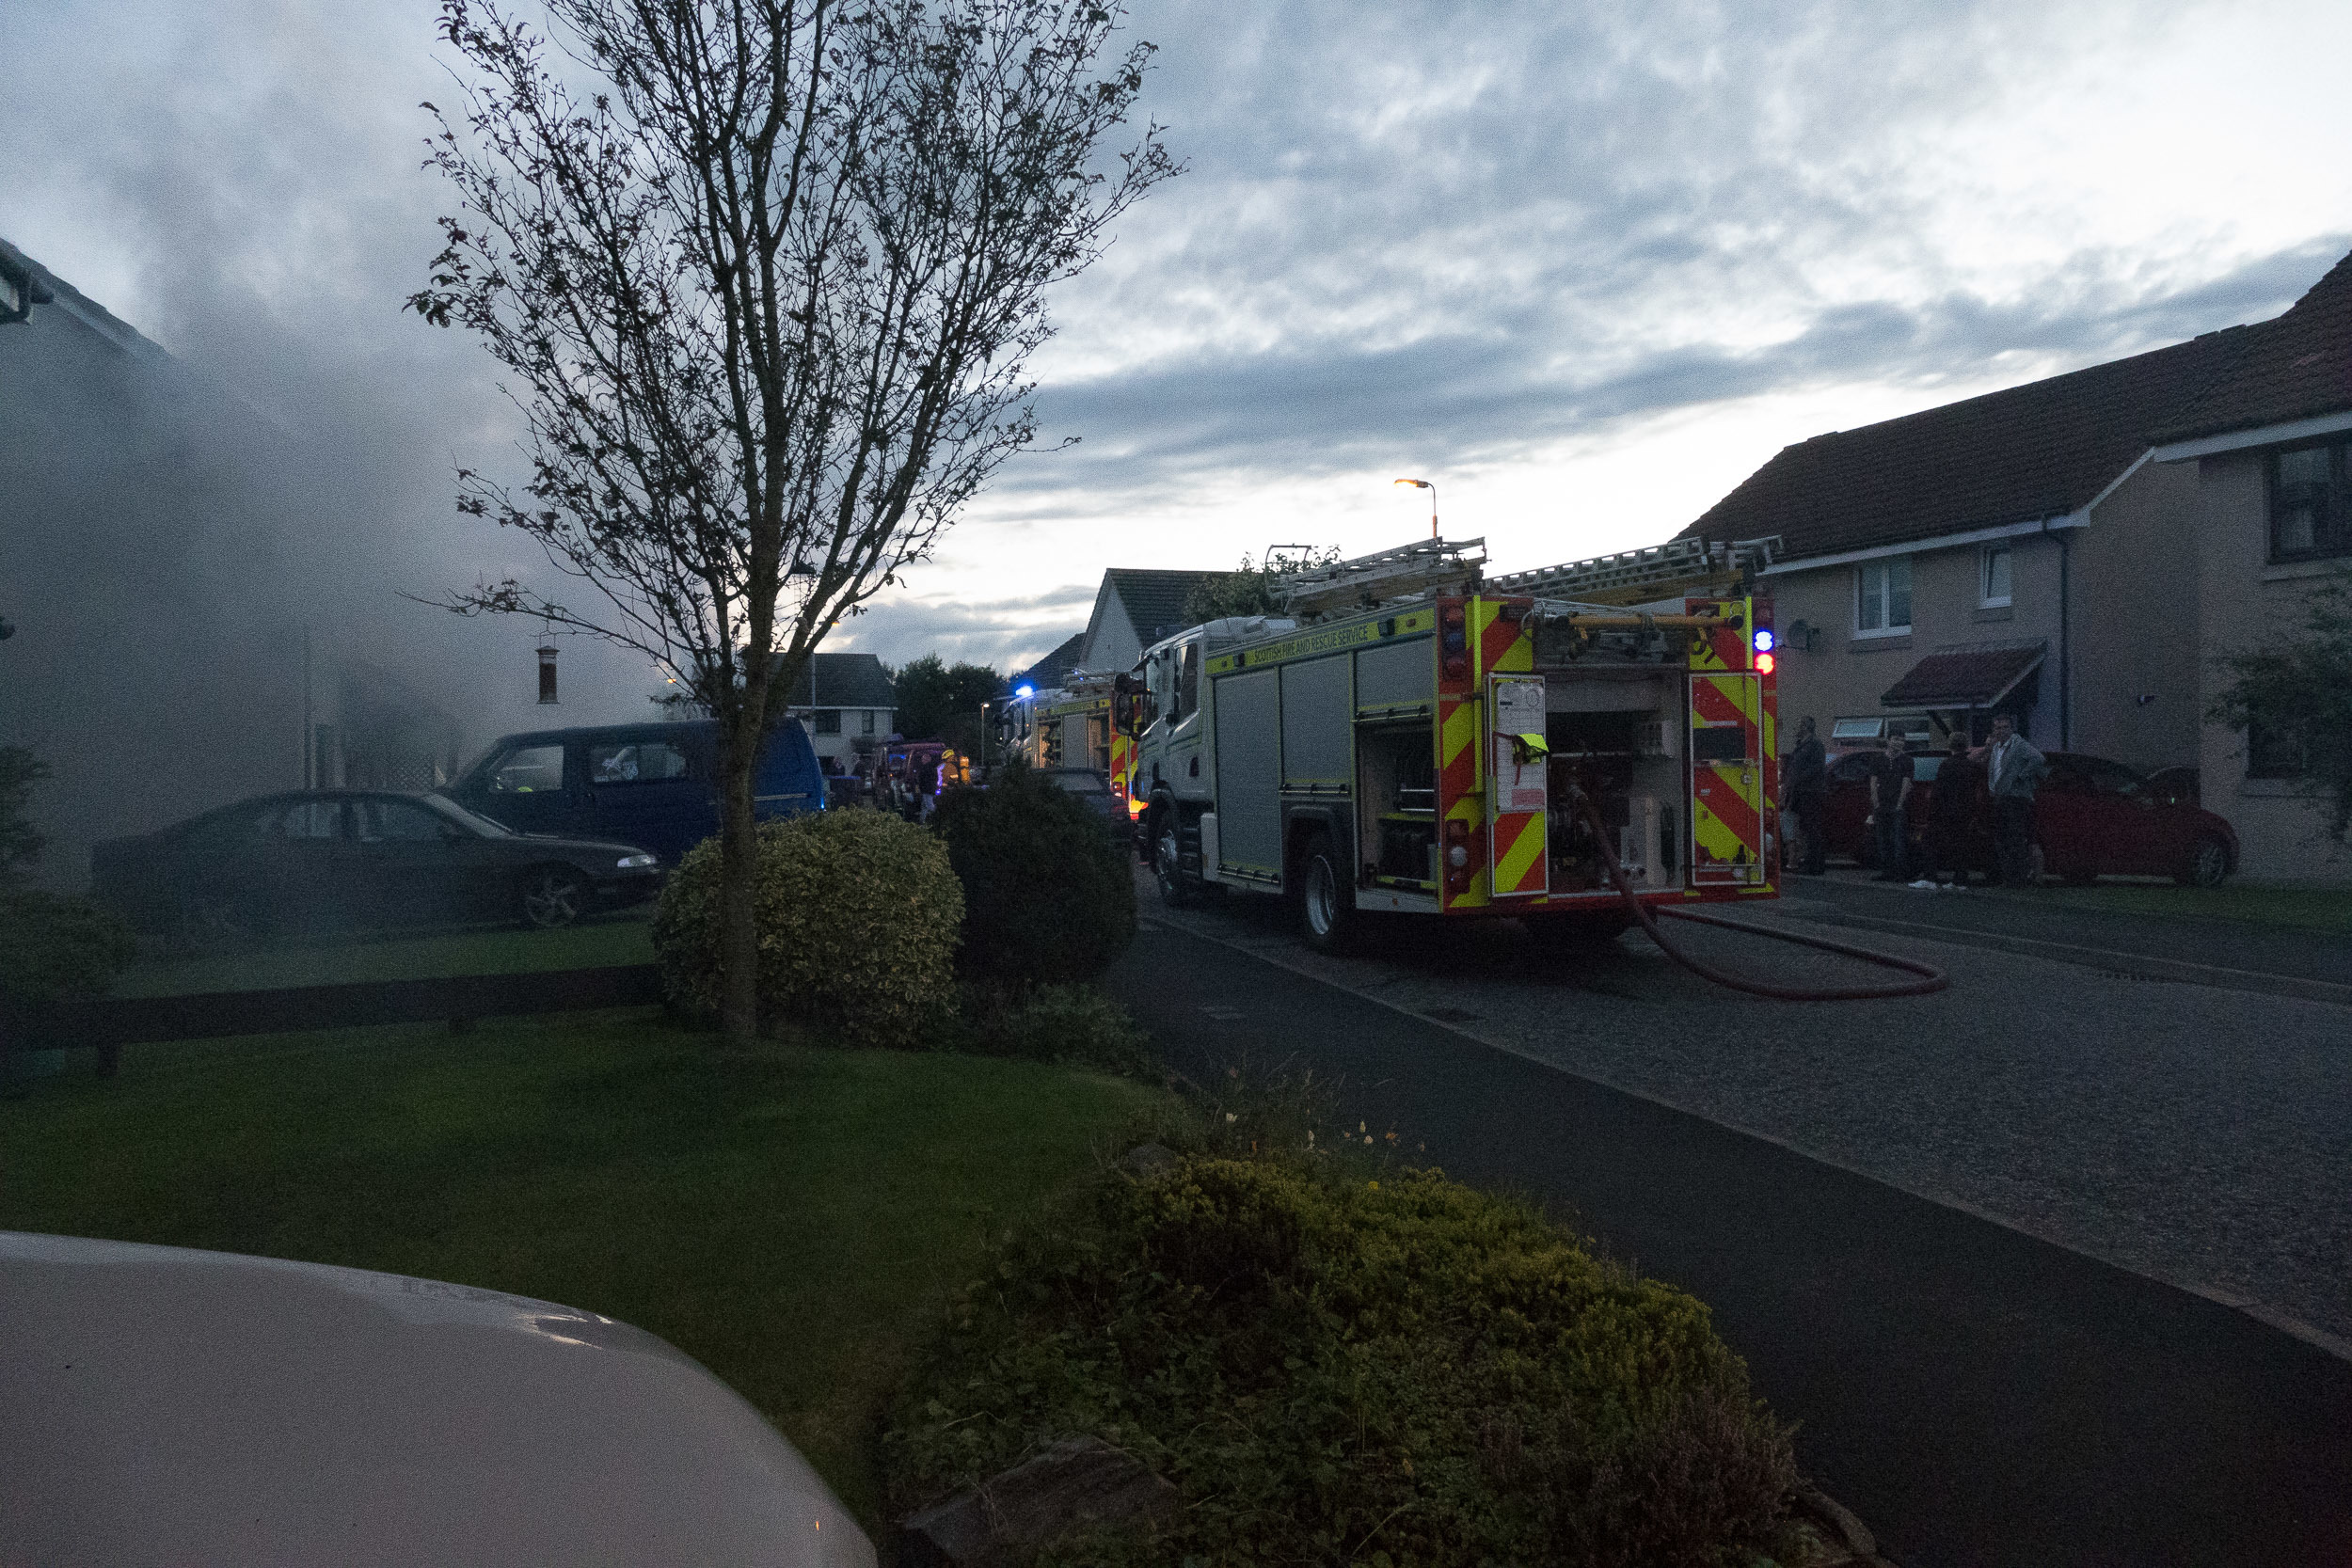 Firefighters at house fire on Redcloak Crescent, Stonehaven. Pic by Maureen Berry